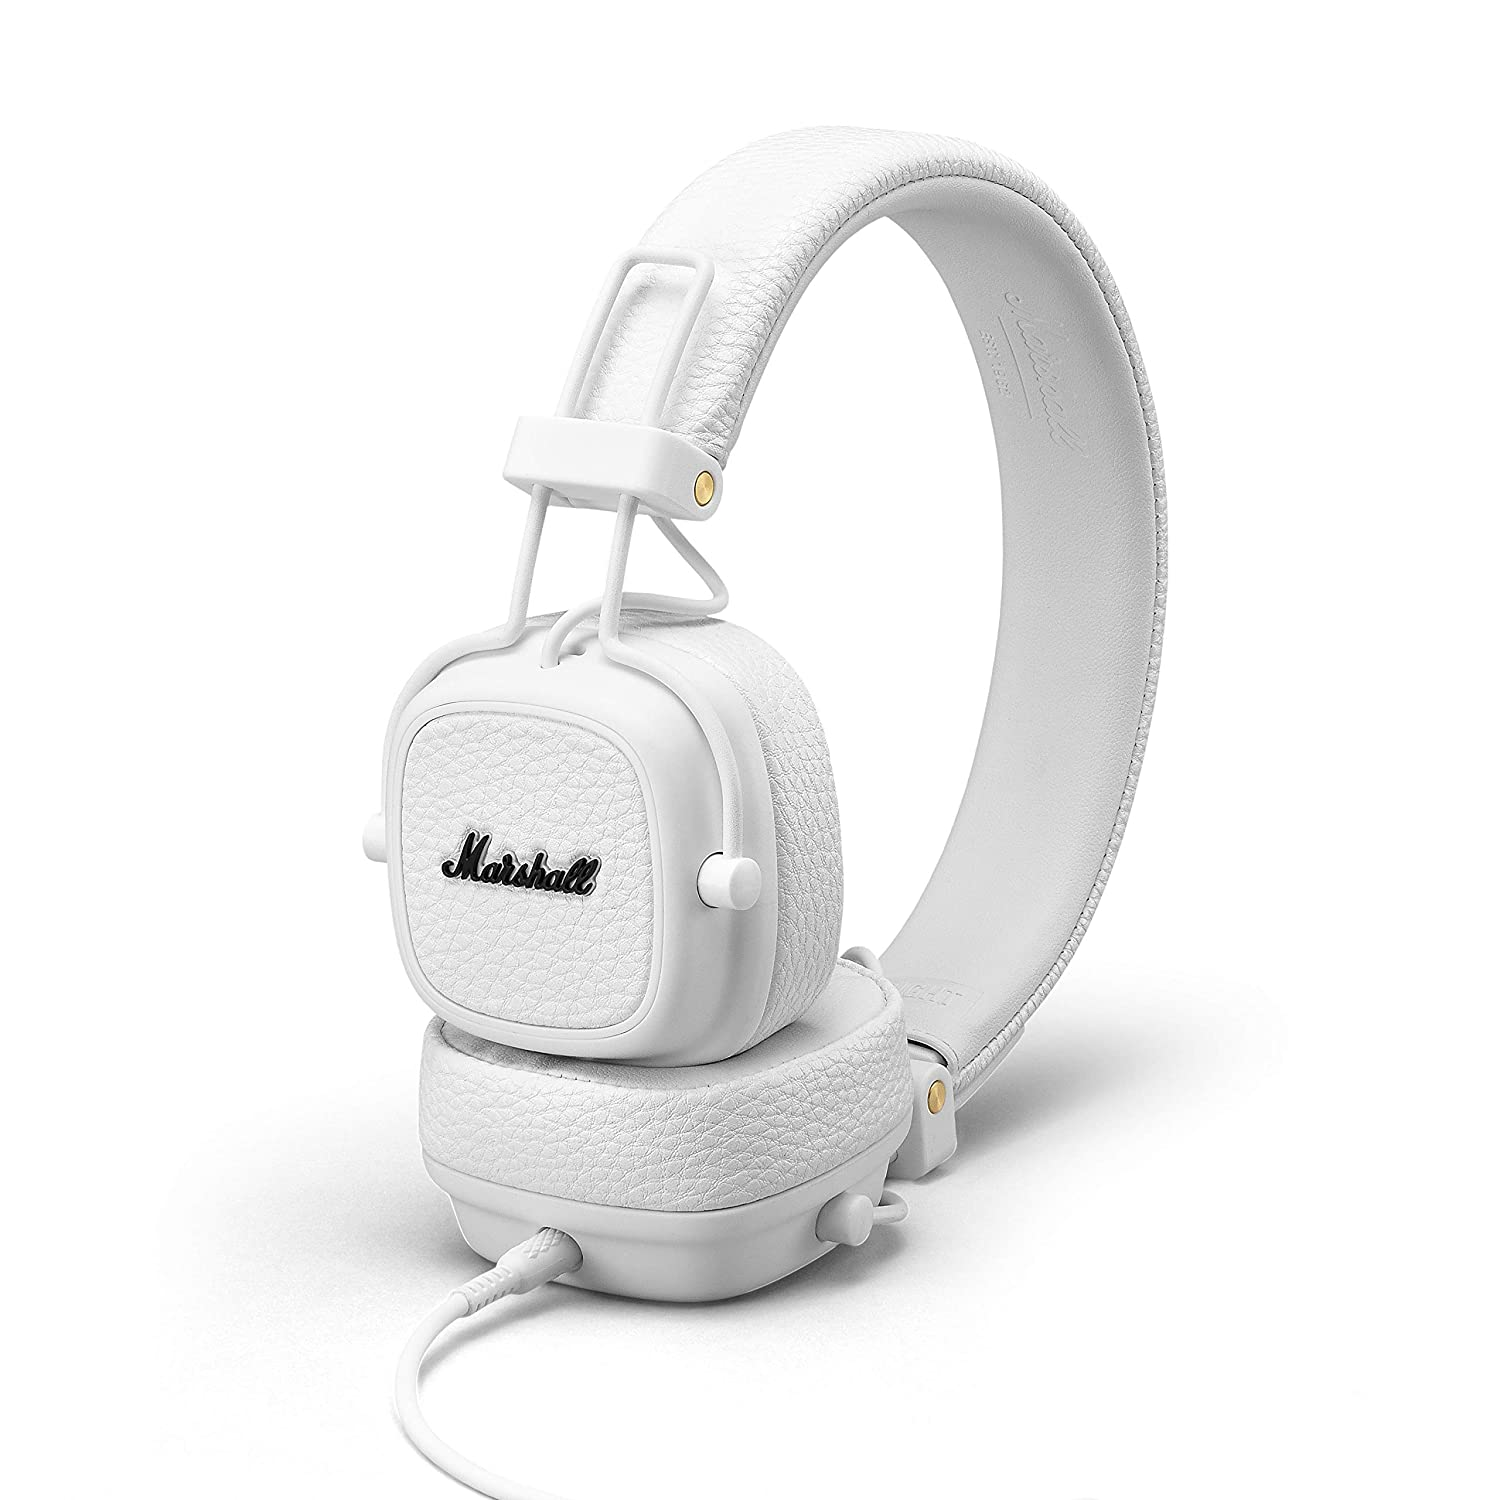 Marshall Major III Auriculares Plegables - Blanco: Amazon.es: Electrónica